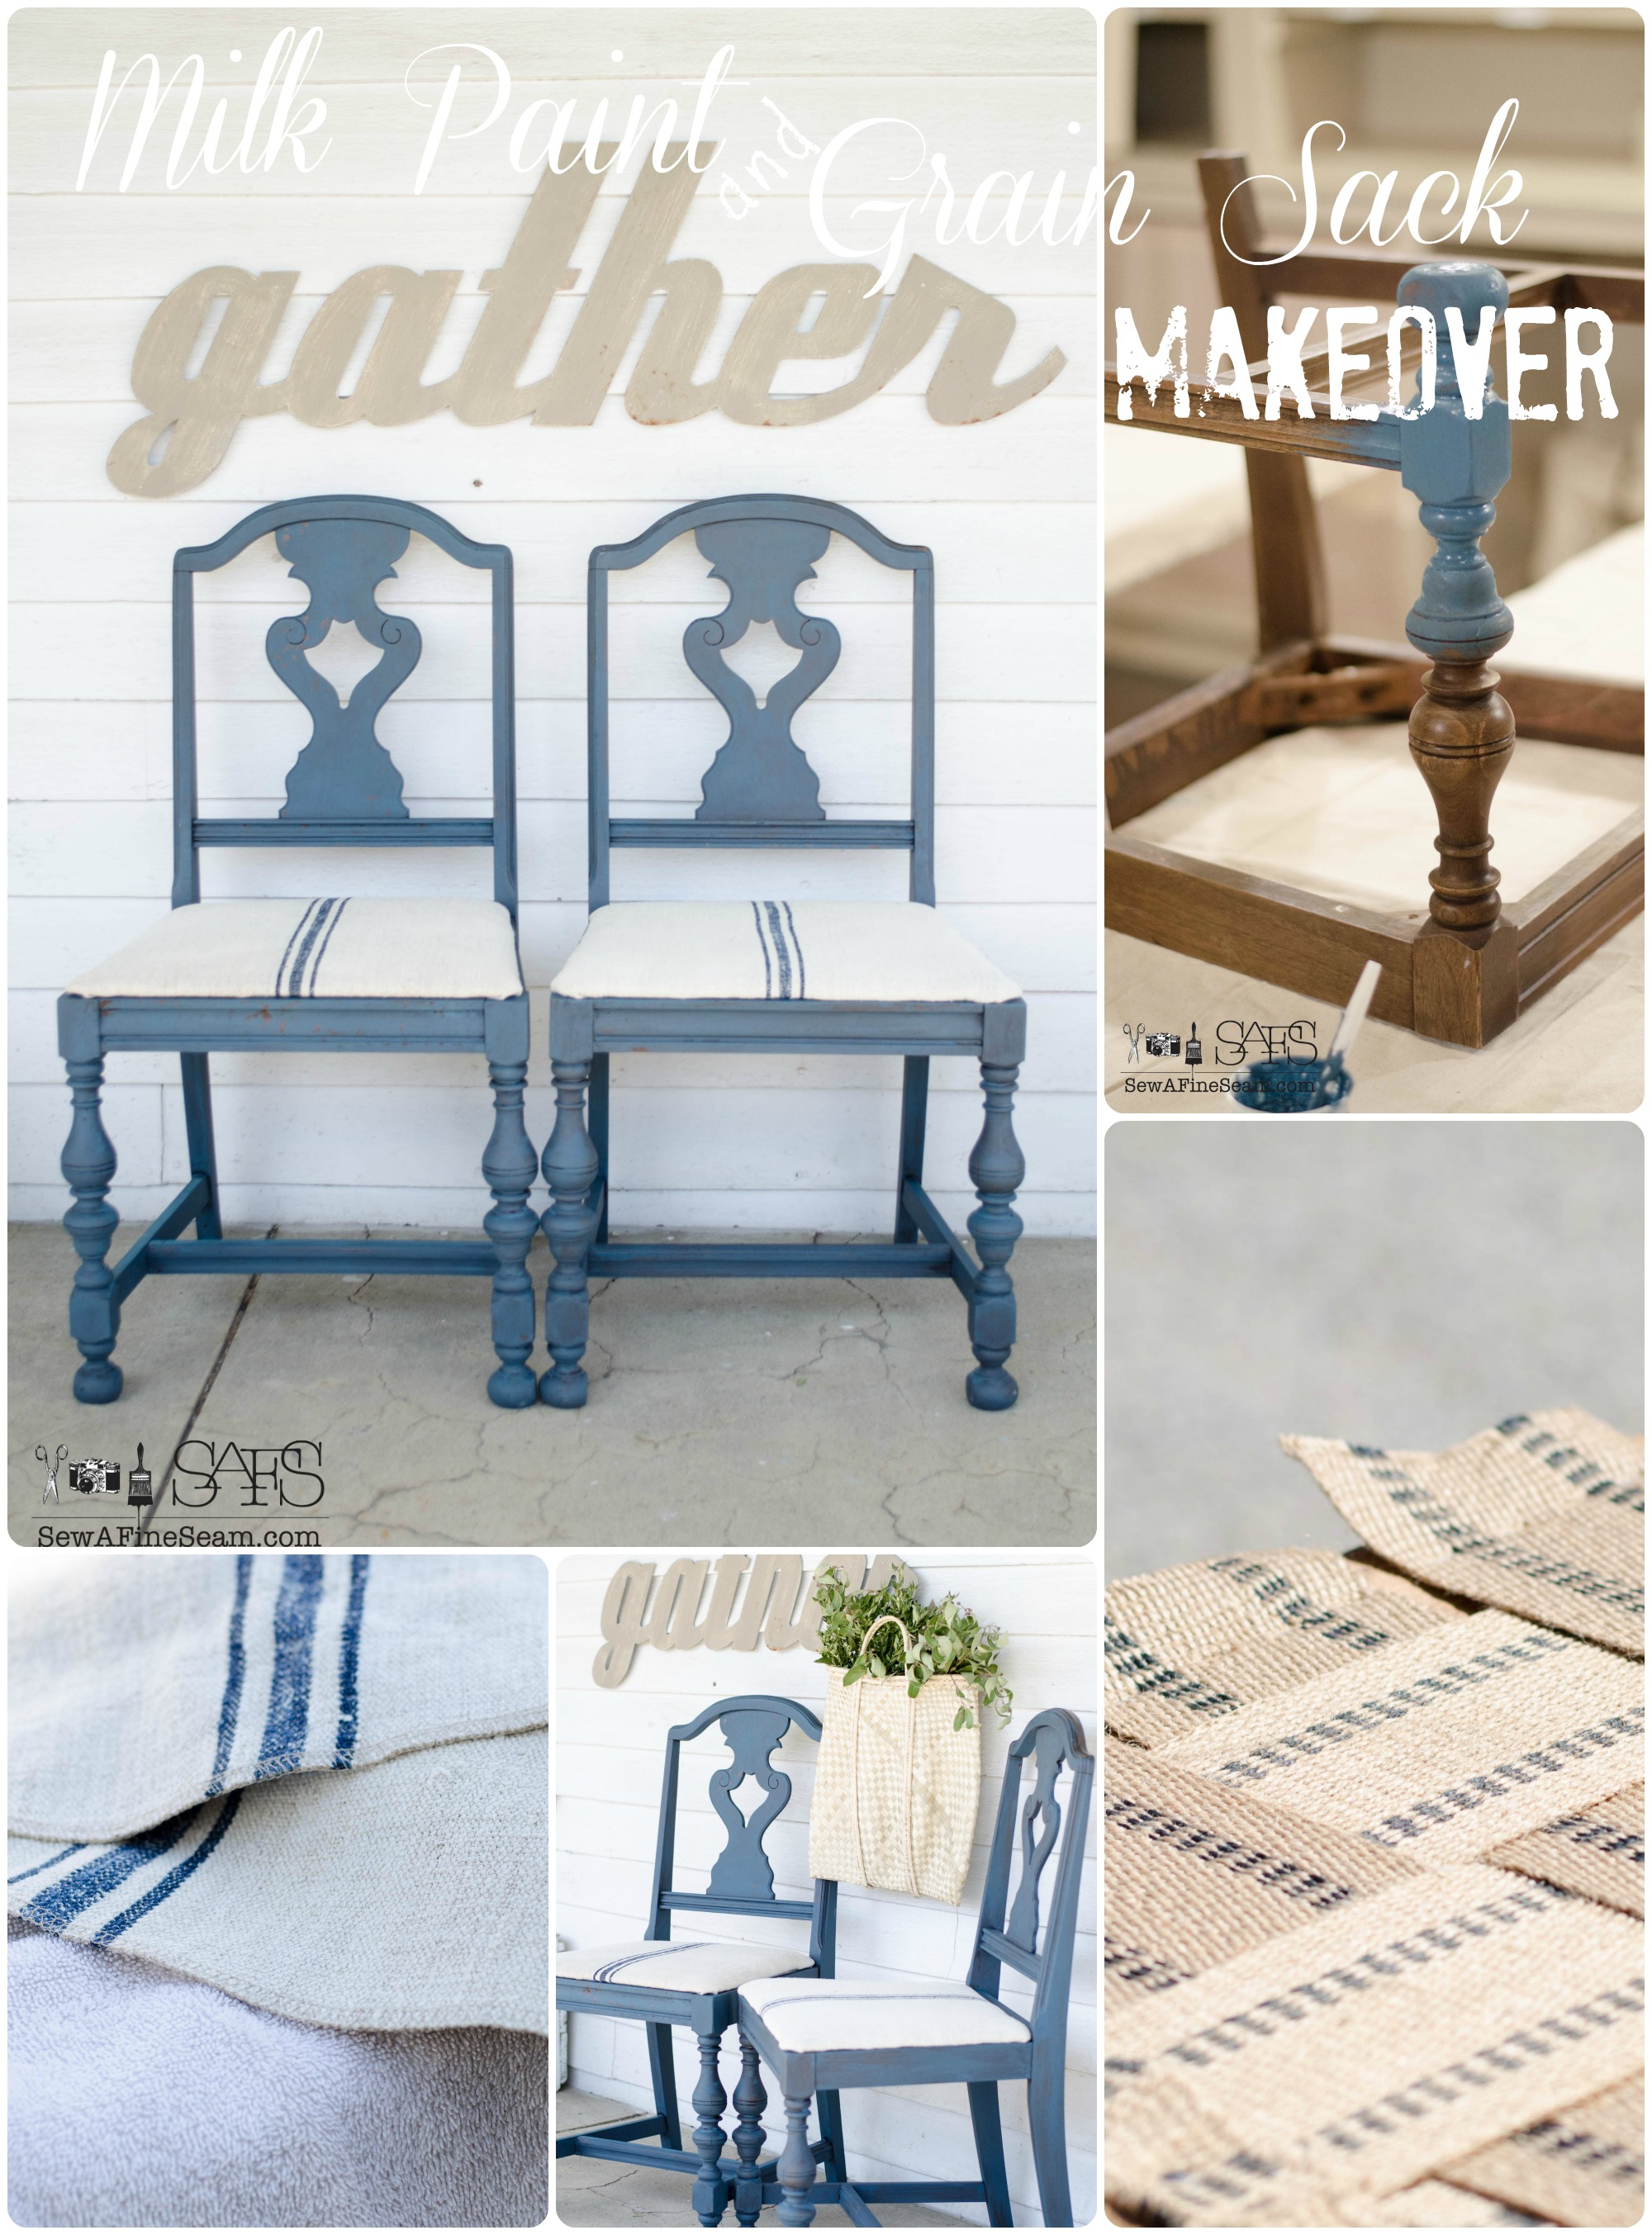 Milk Paint and Grain Sack Makeover – Project Challenge 4